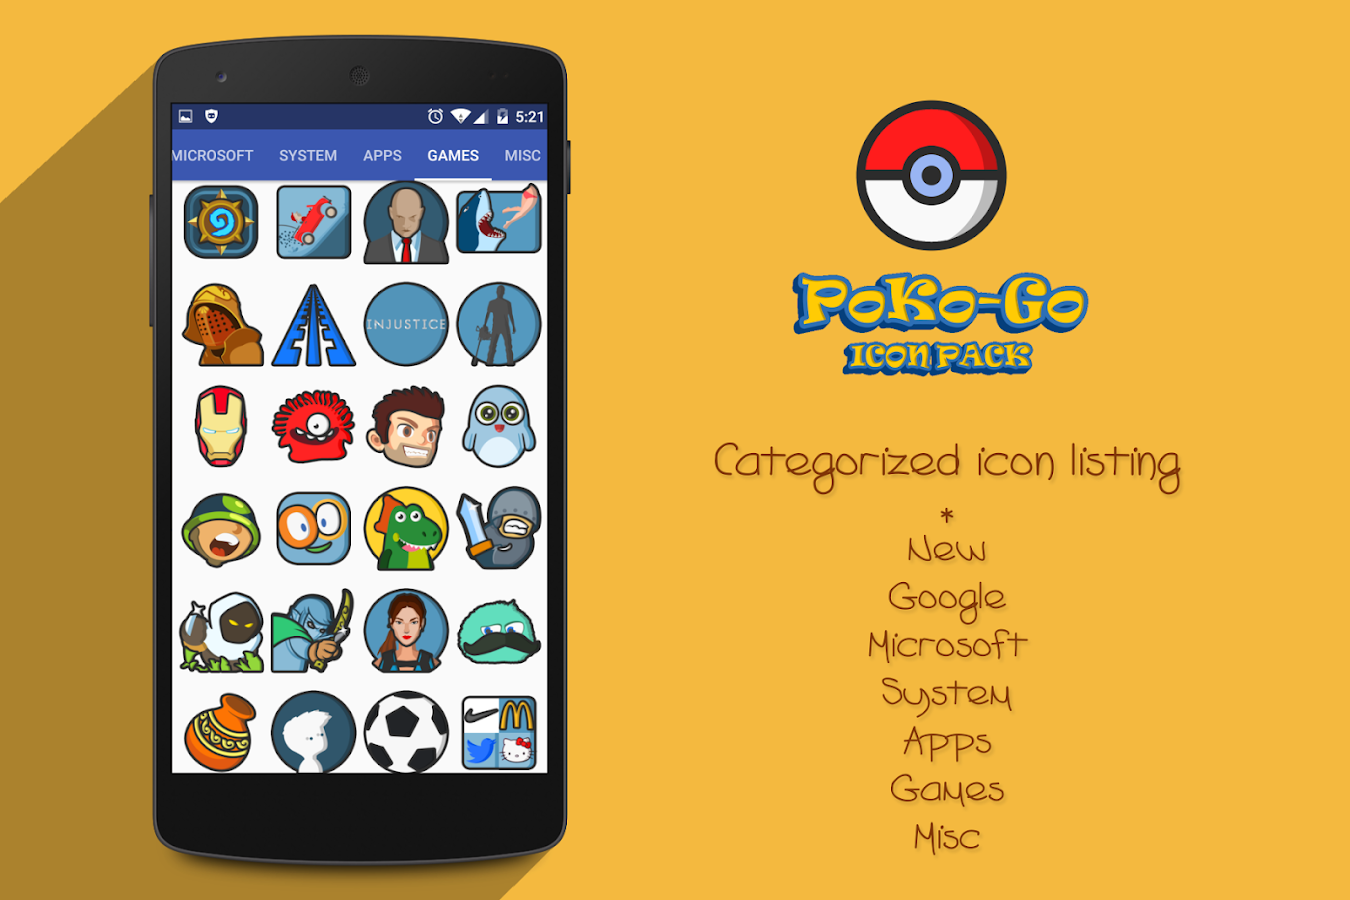 PokoGo Icon Pack Screenshot 8